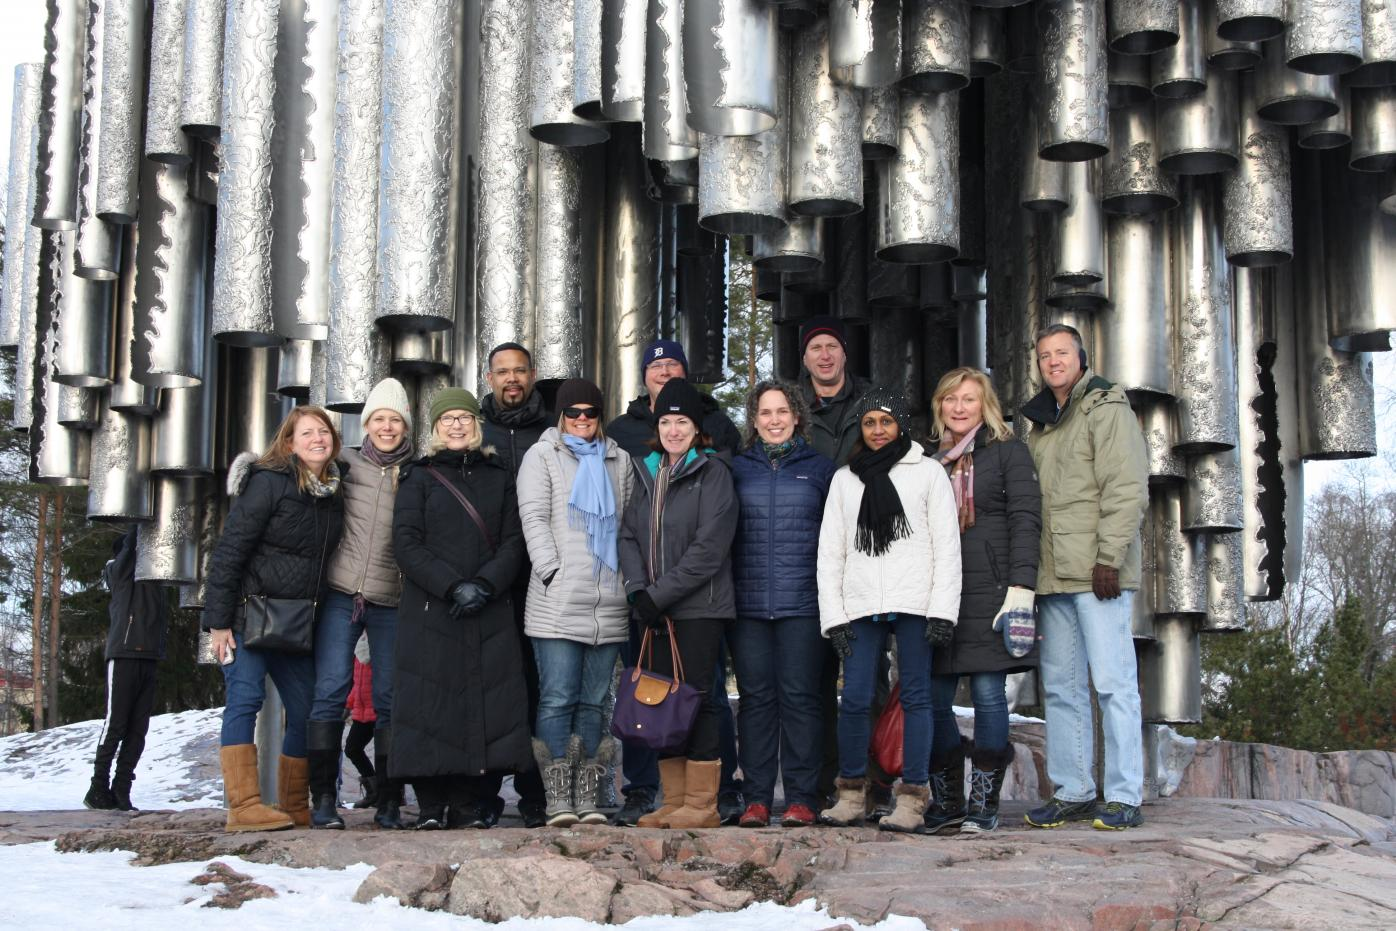 FLGS program participants in Finland at the Sibelius Monument